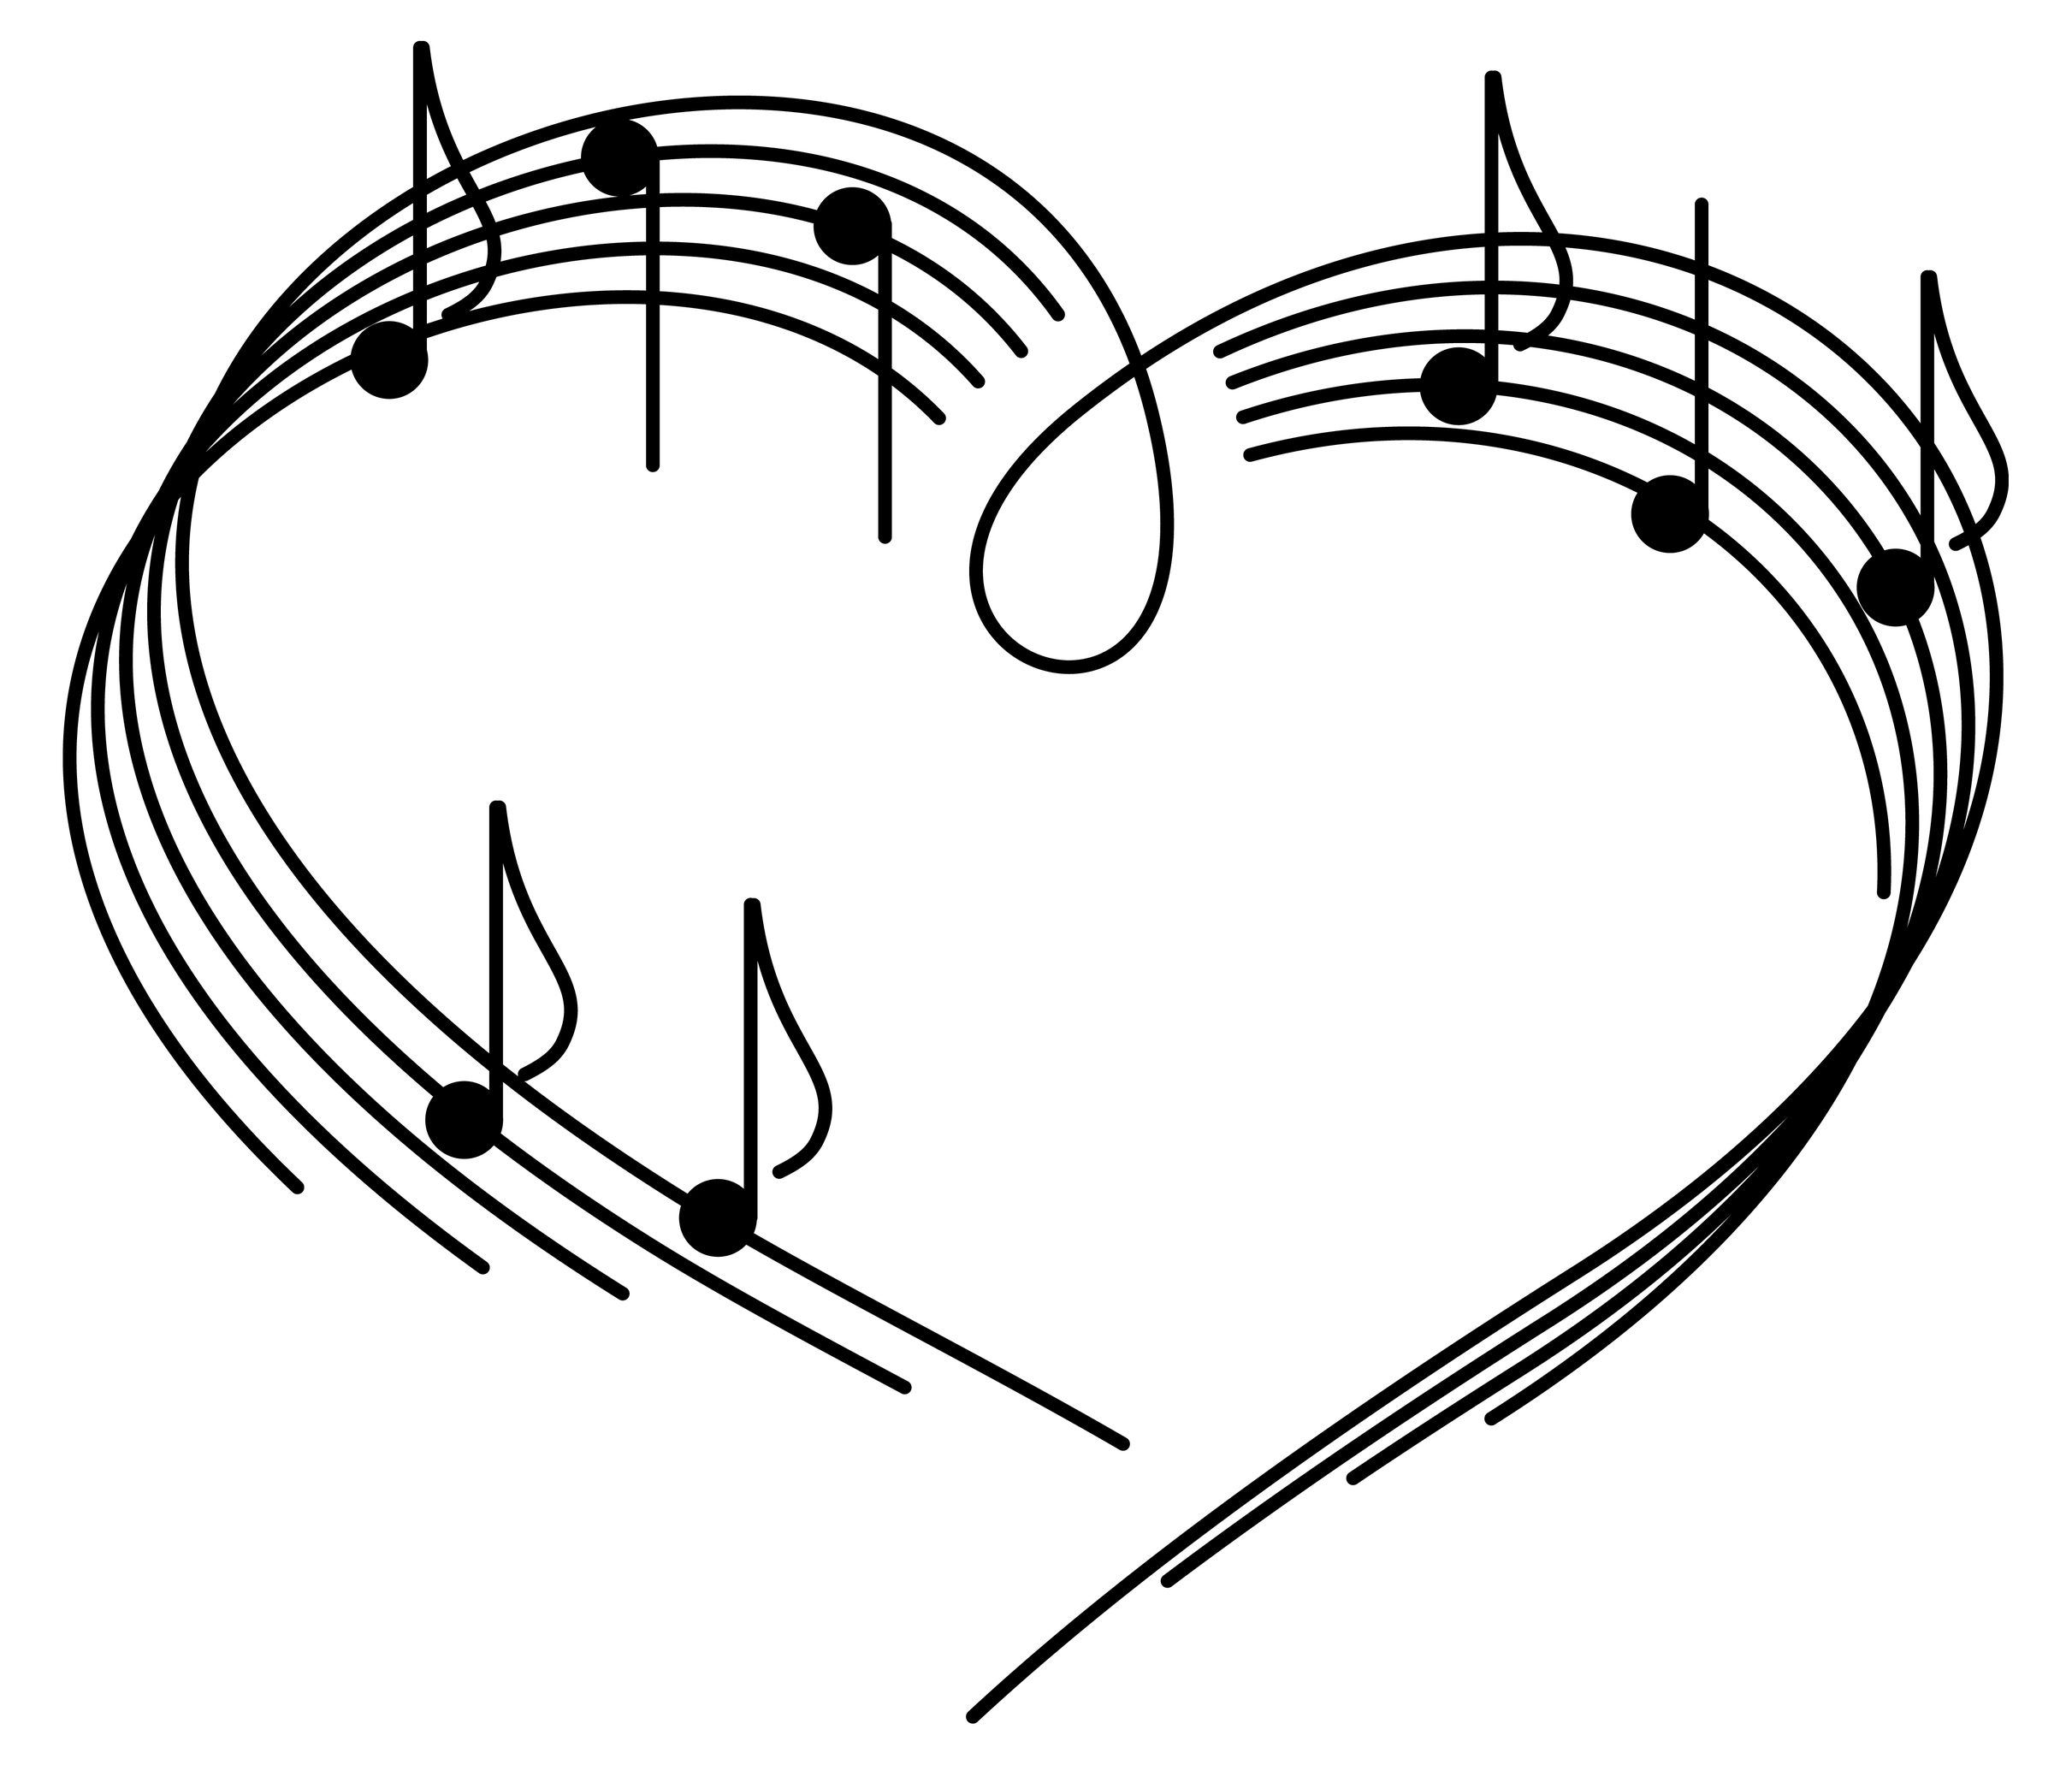 Love and music clipart image library library 17 Best images about signos musicales on Pinterest | Clip art ... image library library